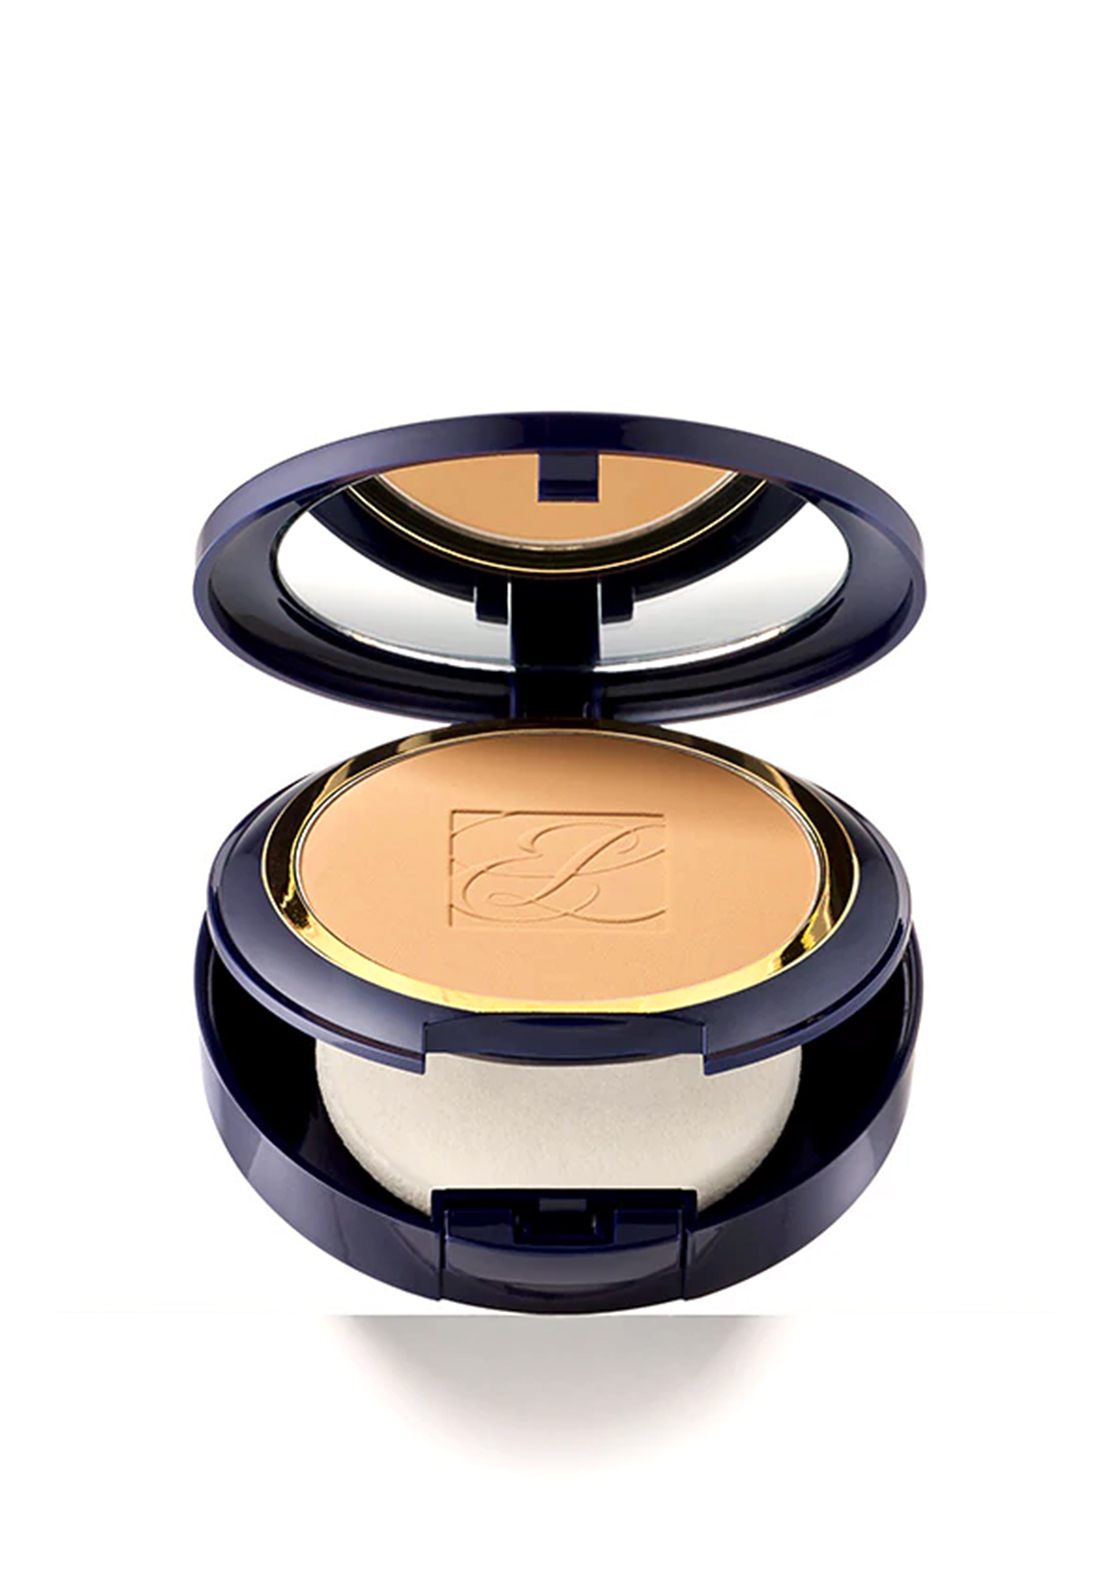 Estee Lauder Double Wear Stay In Place Powder Makeup, Pure Beige